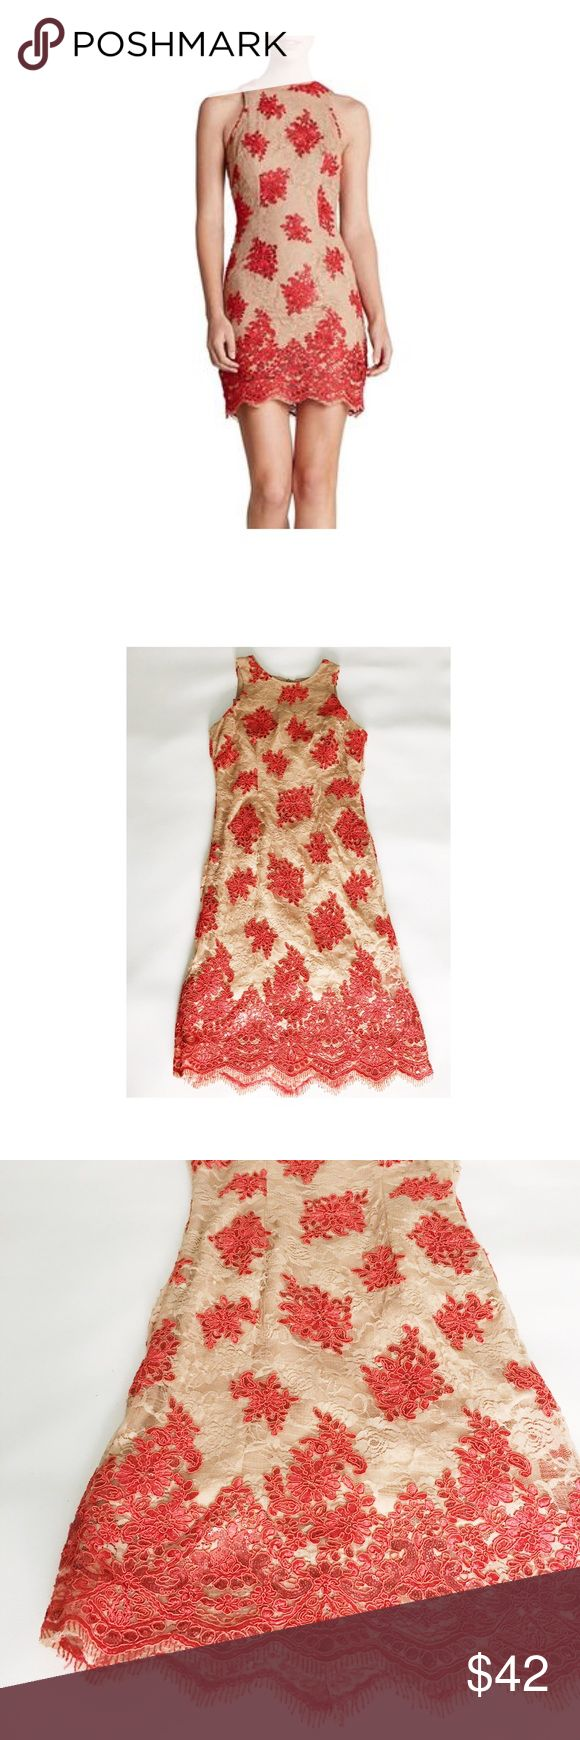 Dress The Population Floral Sequin Dress Size S. Gently used. 100% polyester. Hidden back zip closure. Made in the USA. **First photo is for fitting reference purpose. Floral sequins varies by dresses. ** Dress the Population Dresses Midi